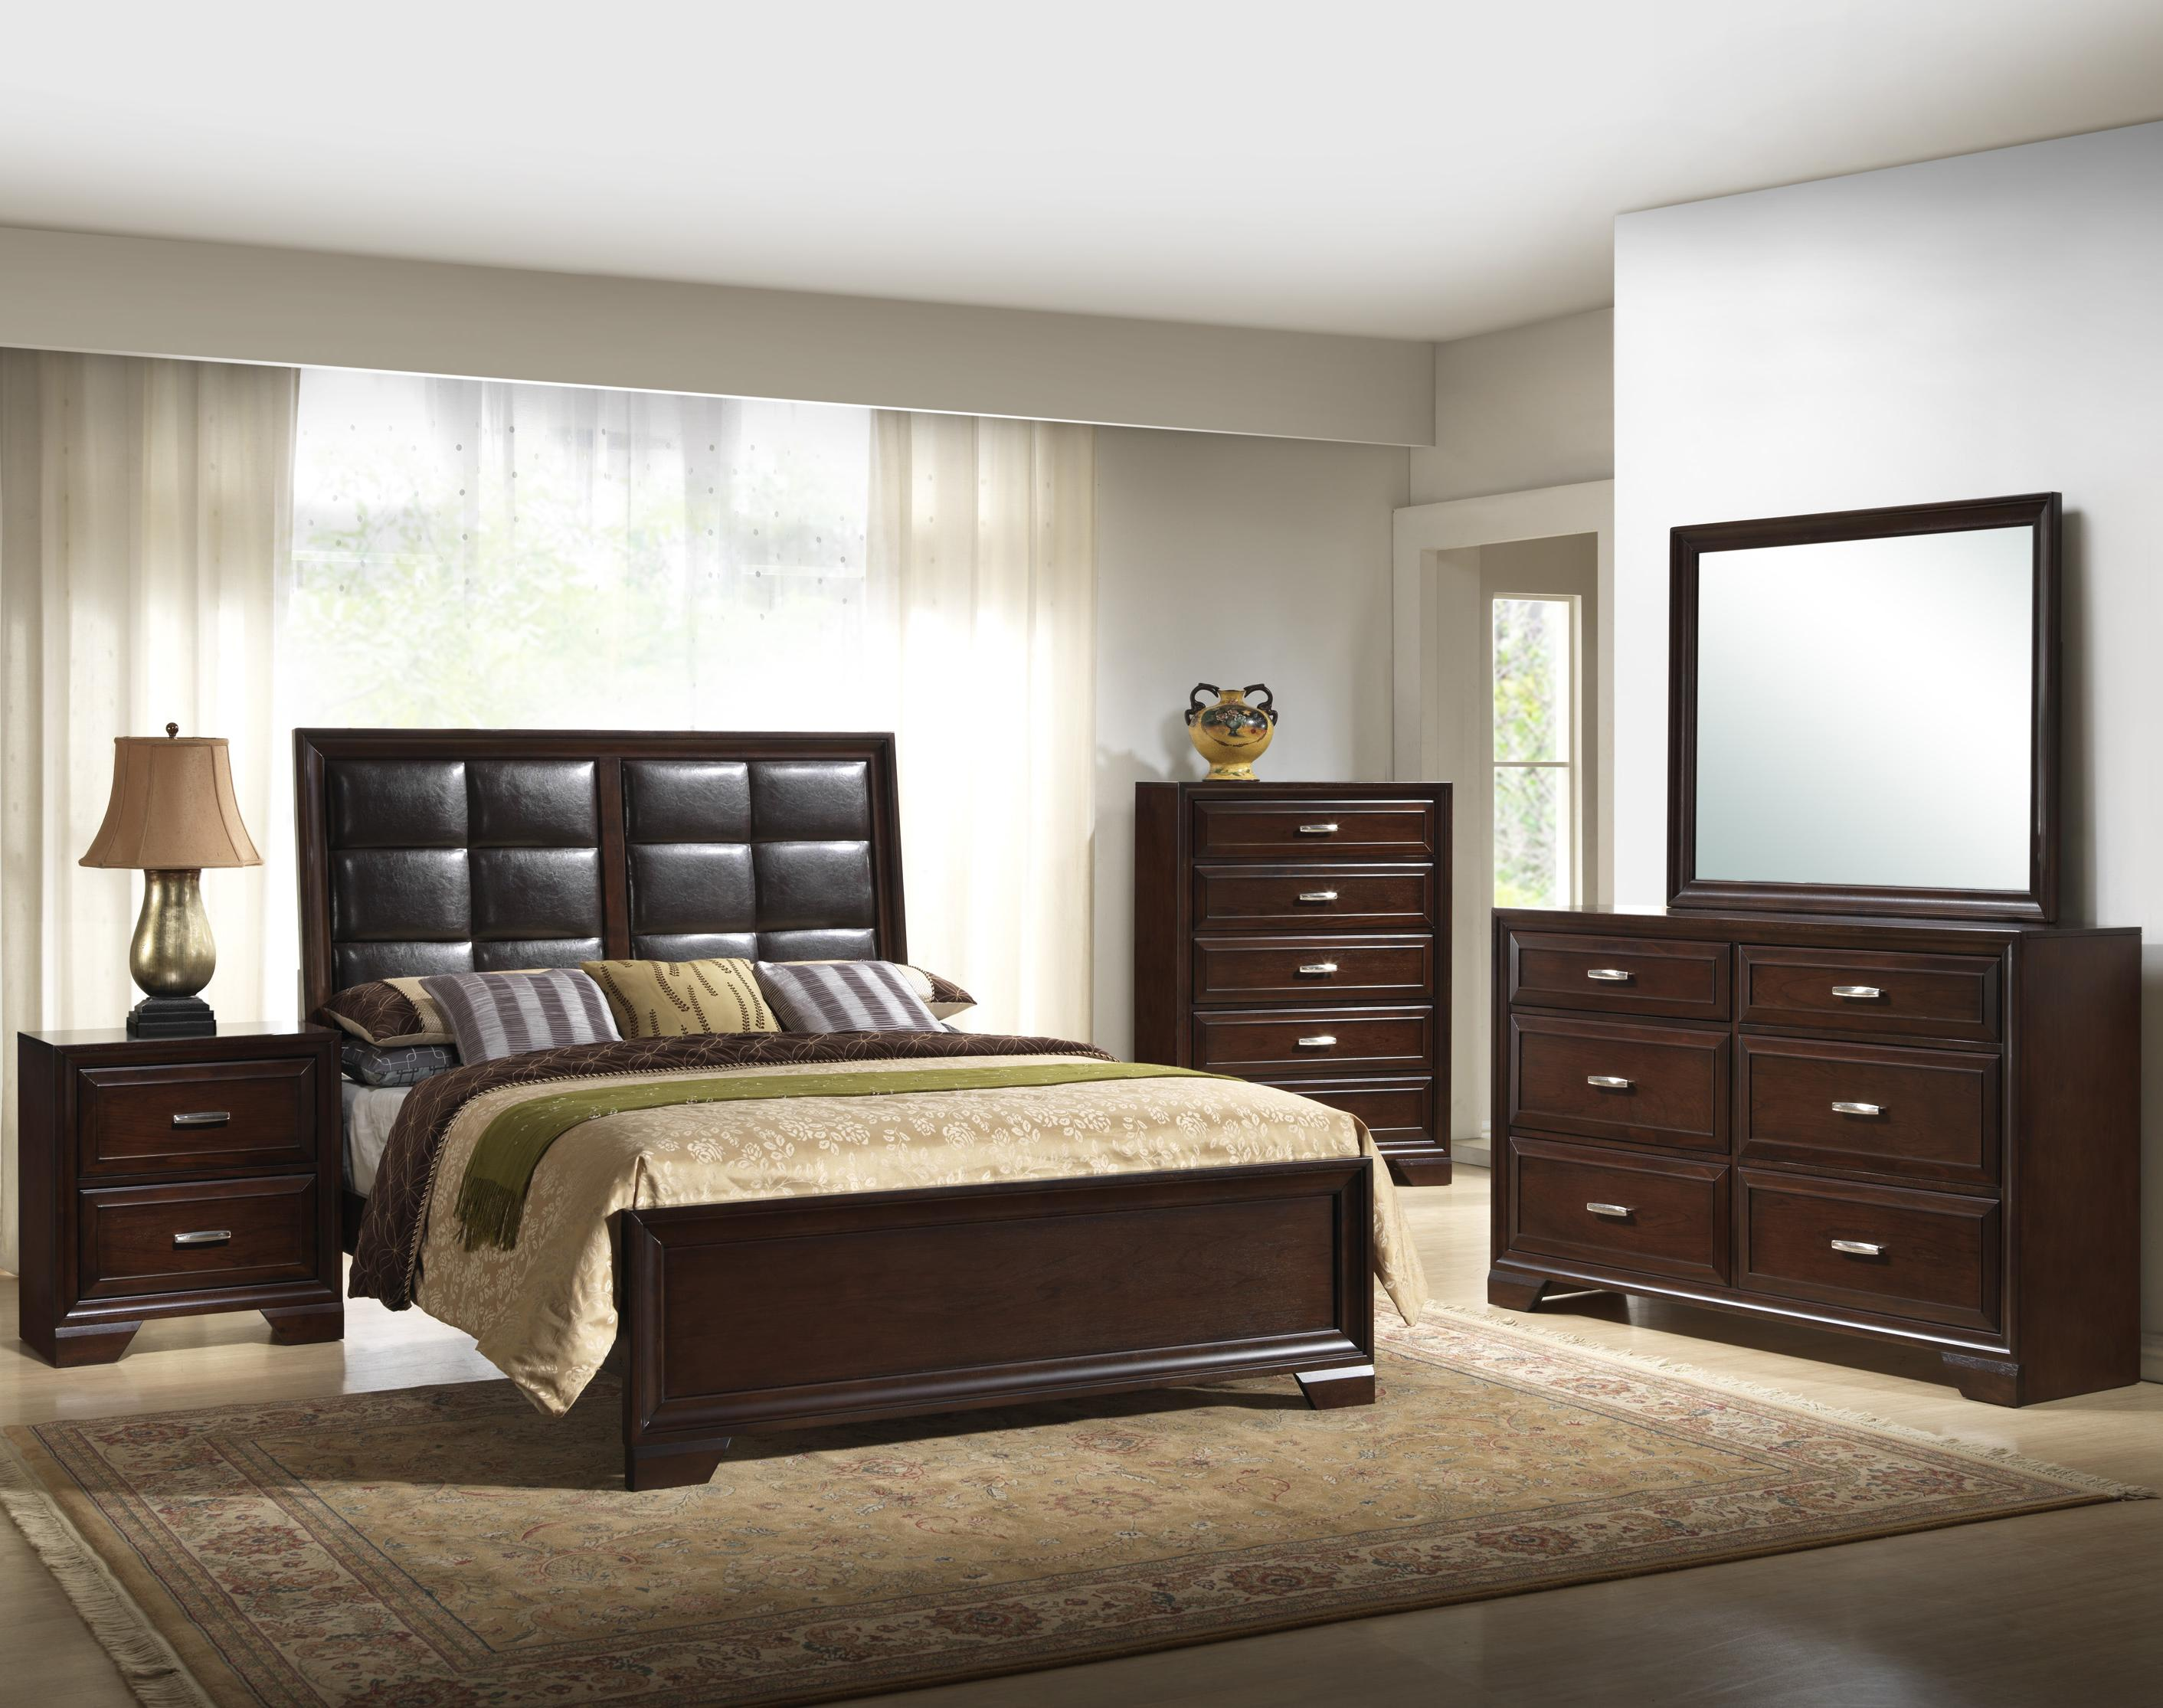 Crown Mark Jacob King Bedroom Group - Item Number: B6510 King Bedroom Group 1